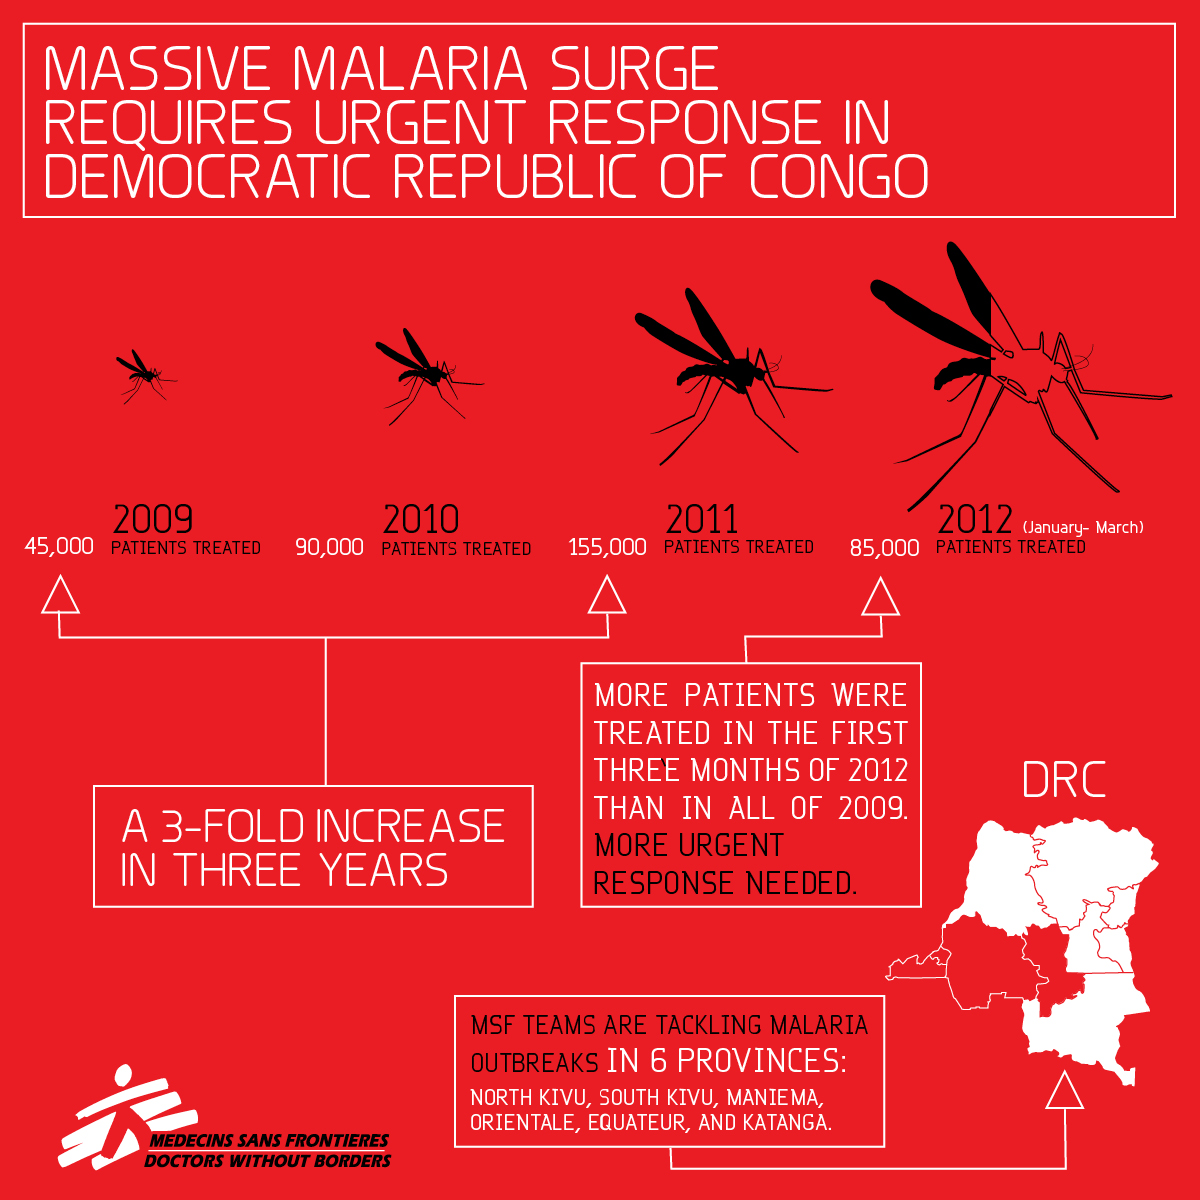 malaria-rates-in-the-democratic-republic-of-congo_50578ce224ff4